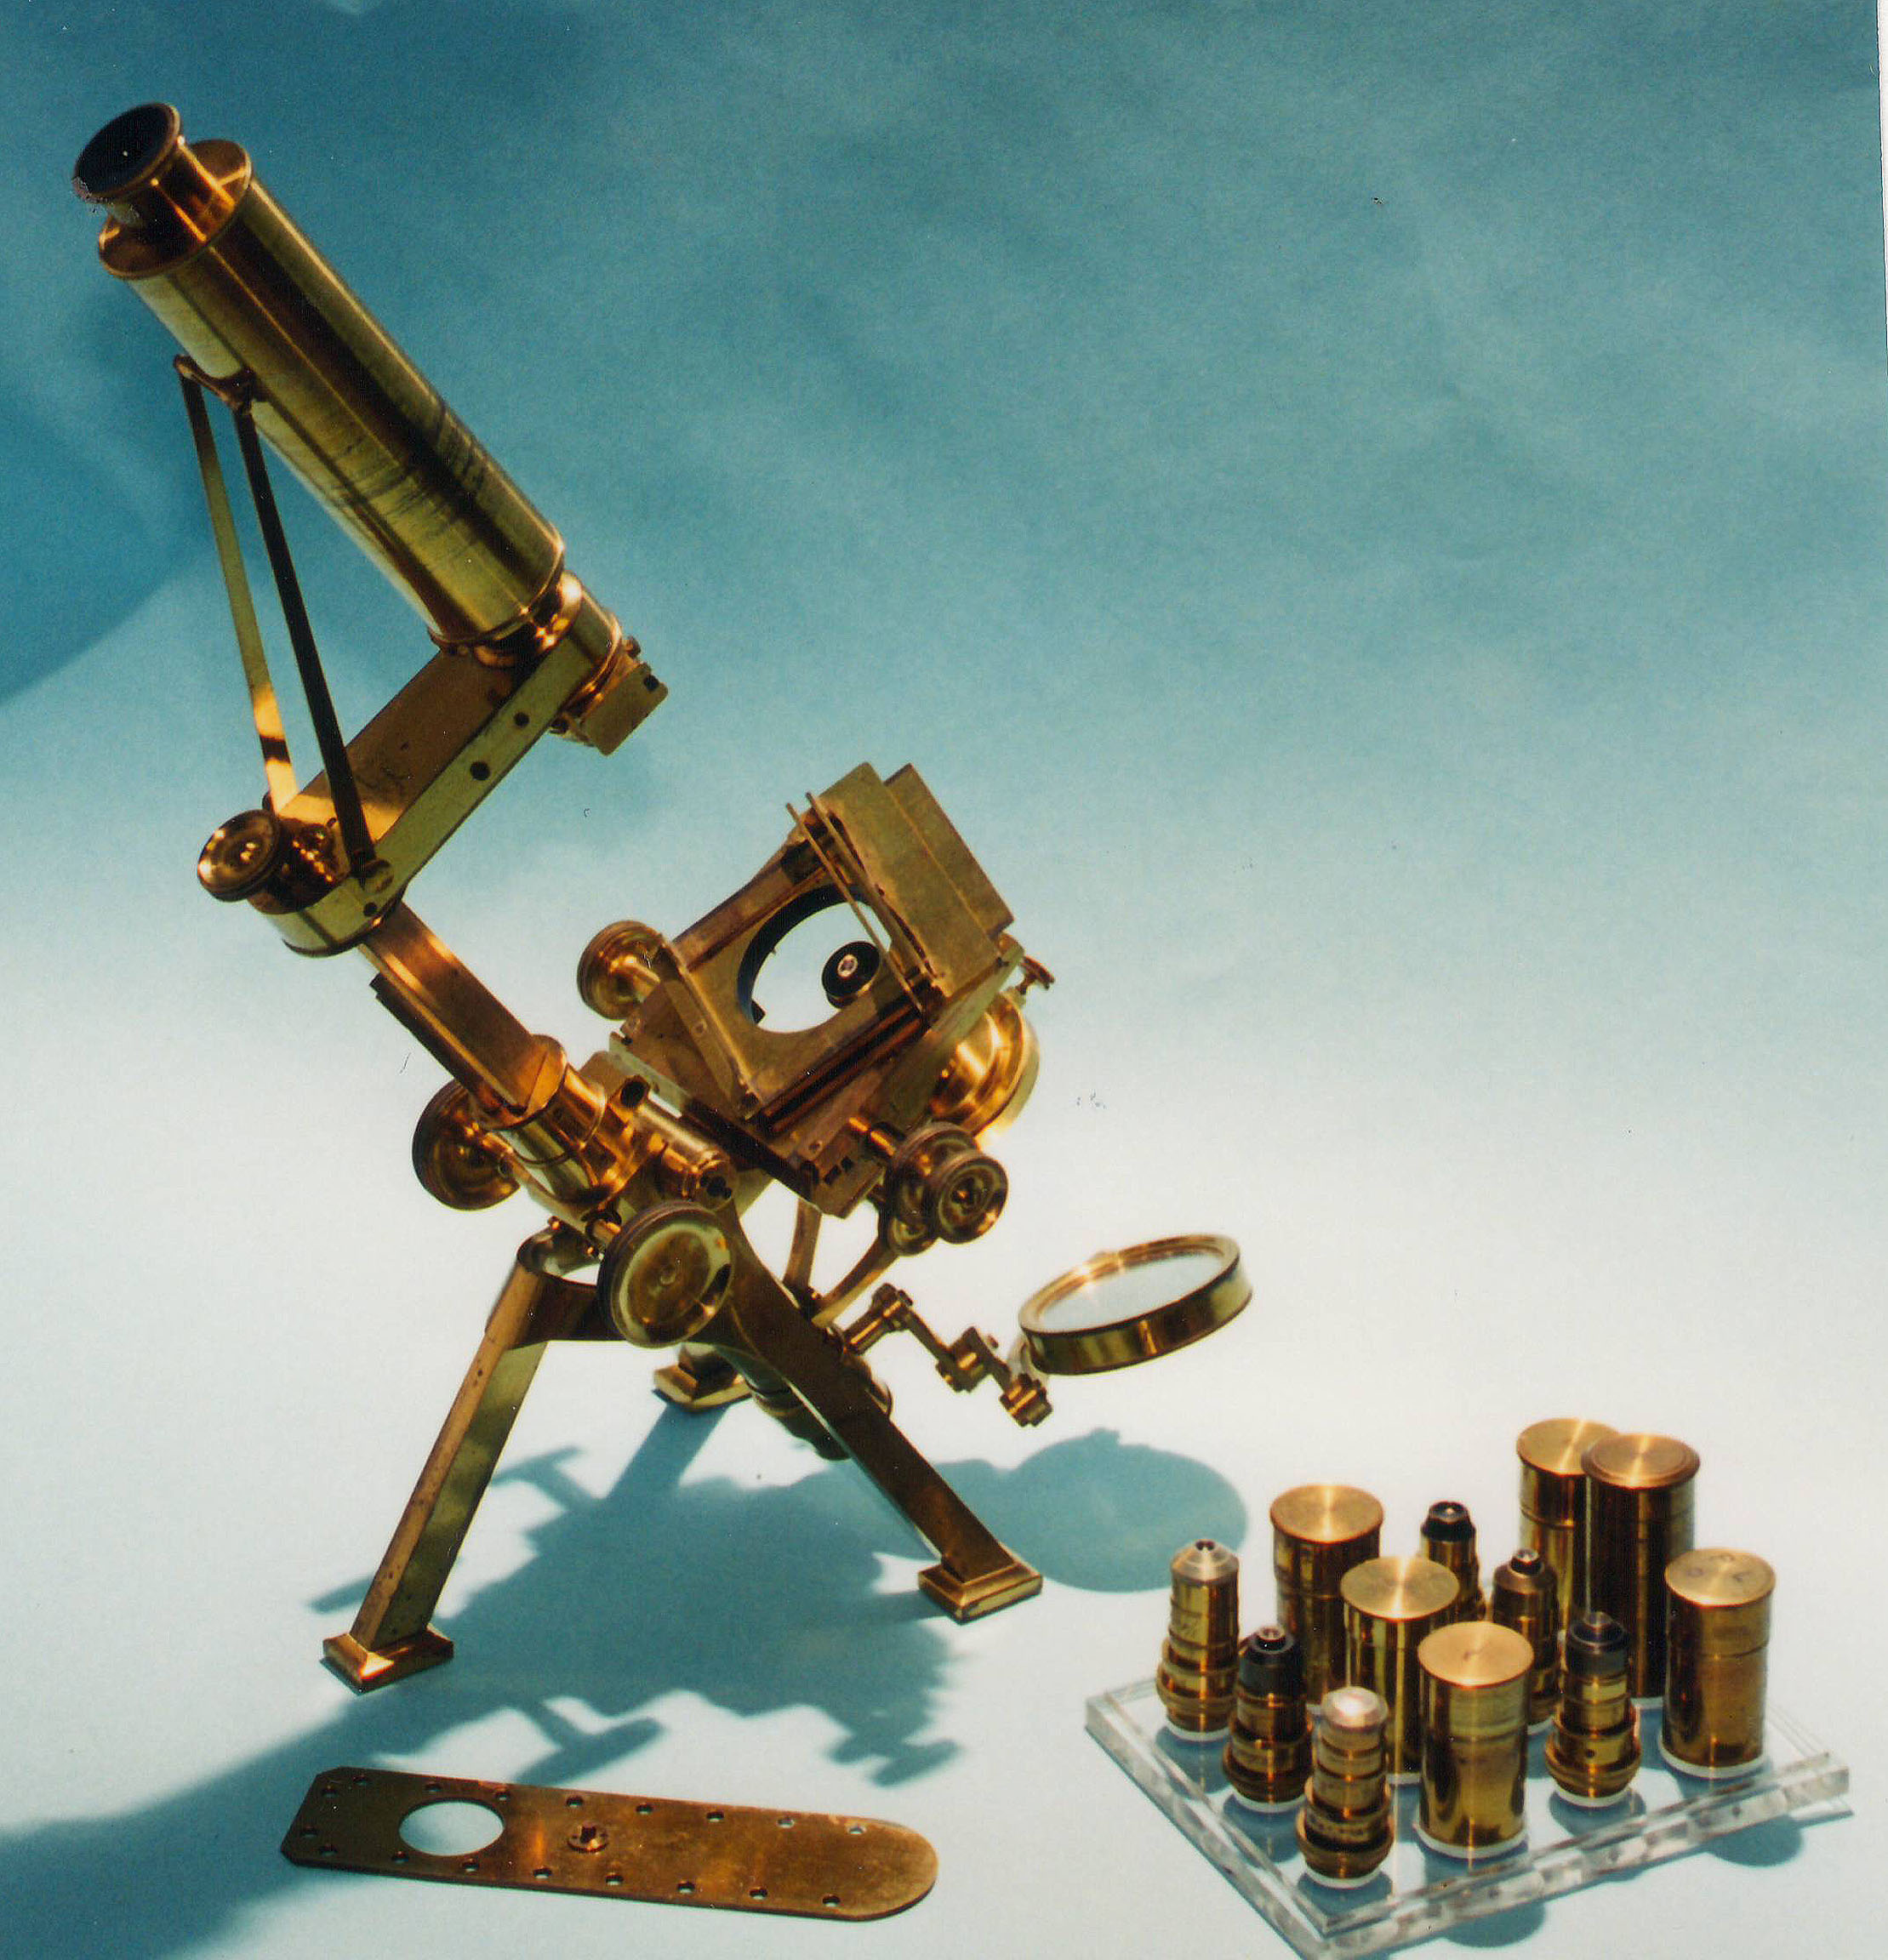 Powell and Lealand Improved First Class Microscope of  1856